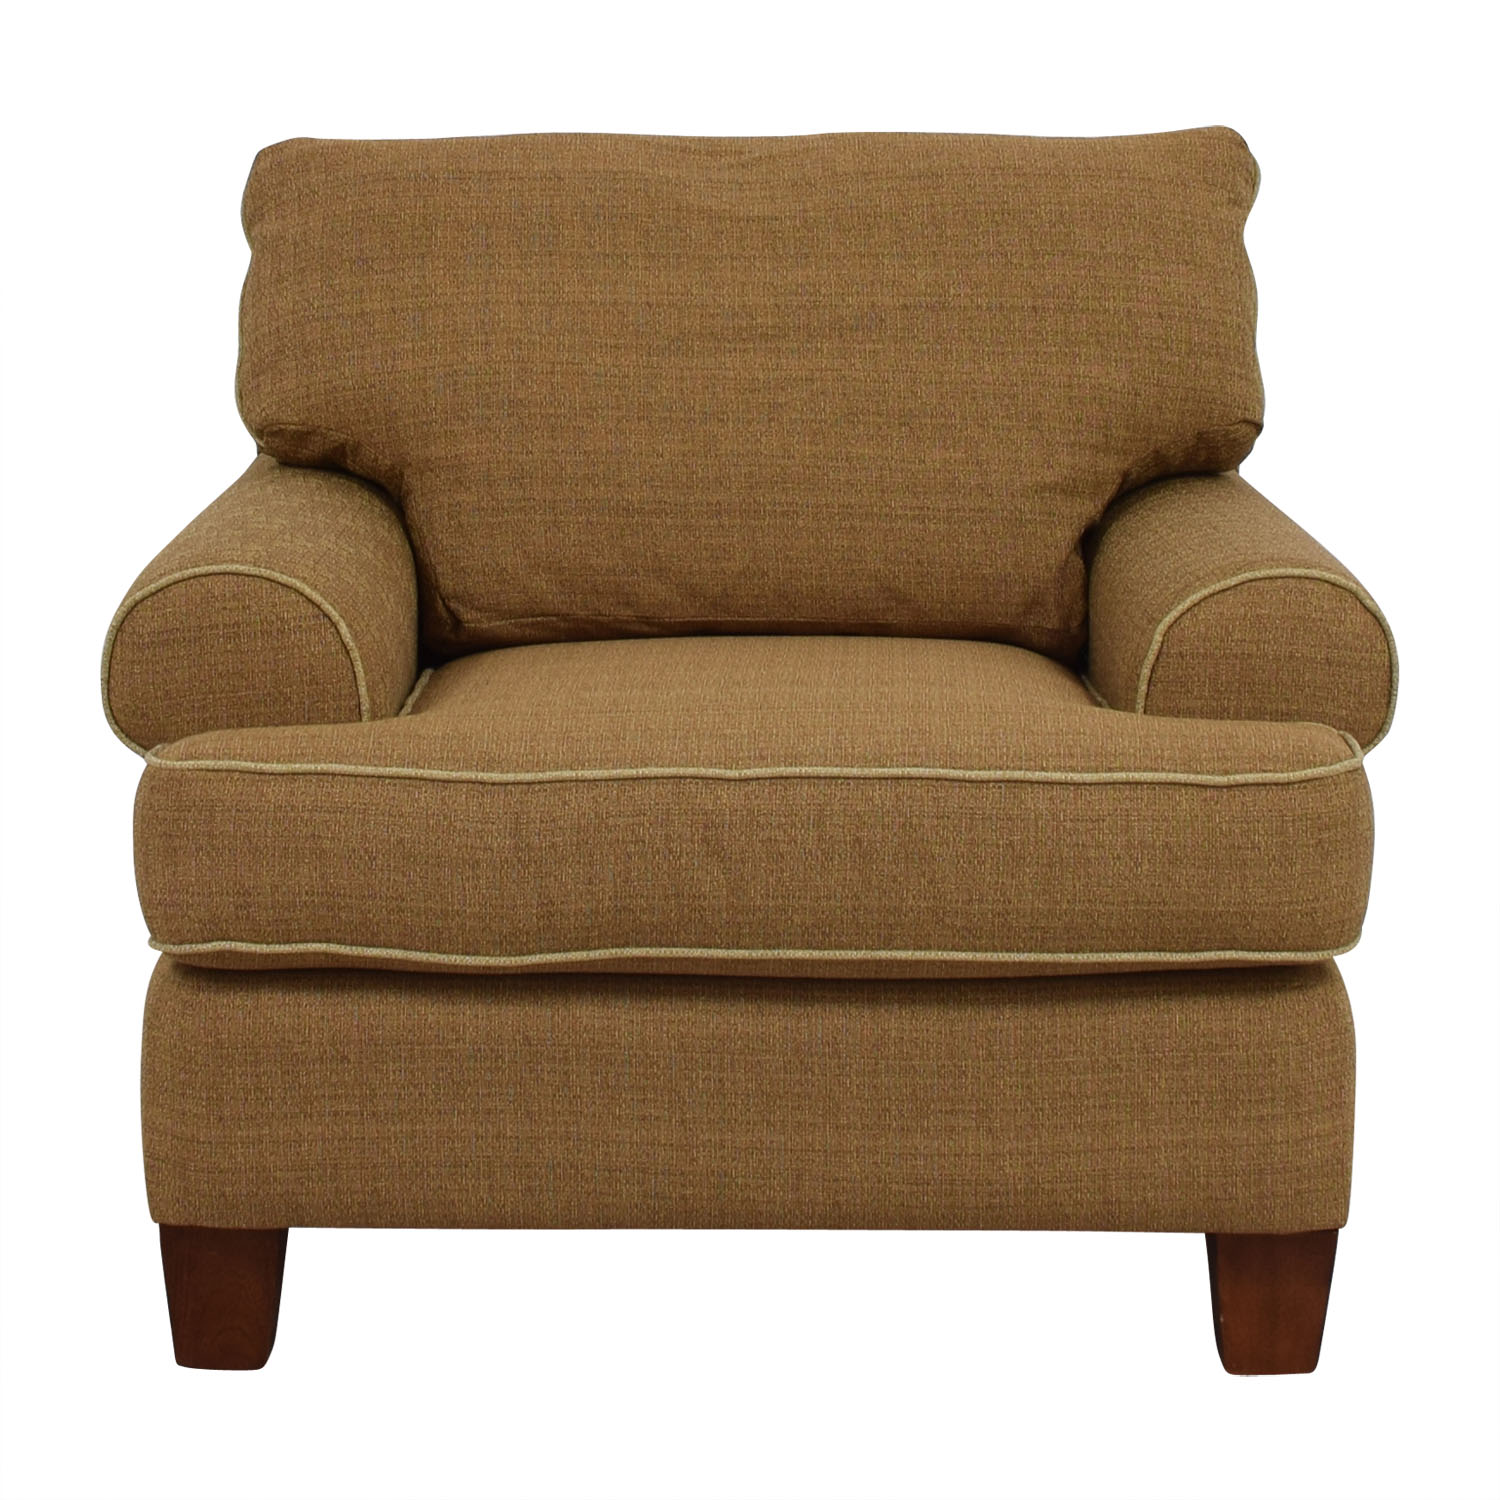 Braxton Culler Braxton Culler Brown Upholstered Chair dimensions